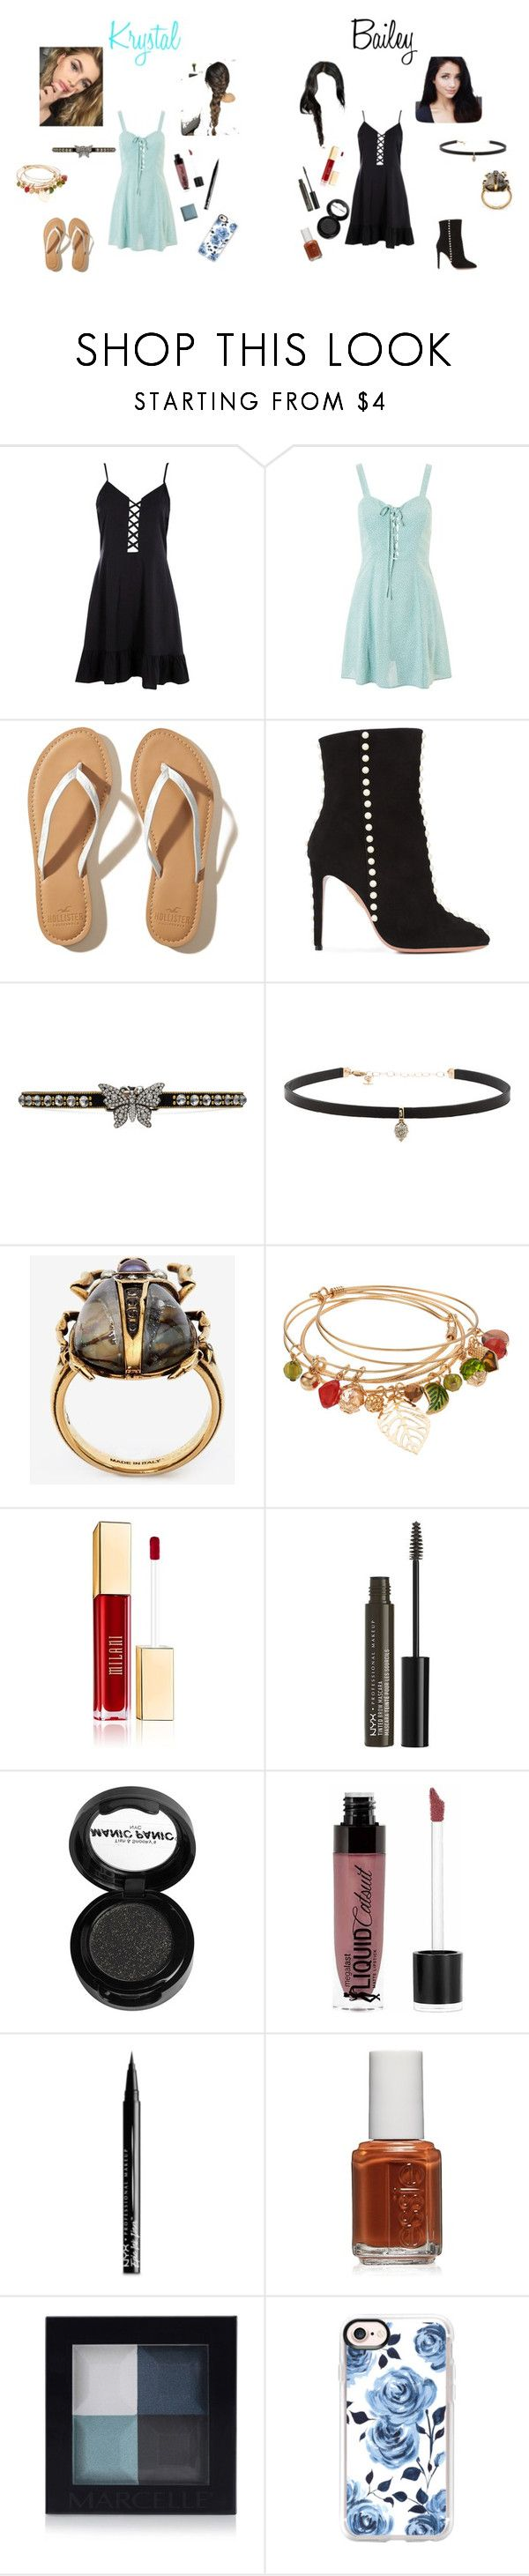 """""""Kyrstal Black and Bailey Swan -visions-"""" by megpegachu on Polyvore featuring Boohoo, Topshop, Hollister Co., Aquazzura, Gucci, Carbon & Hyde, Alexander McQueen, NYX, Manic Panic NYC and Wet n Wild"""